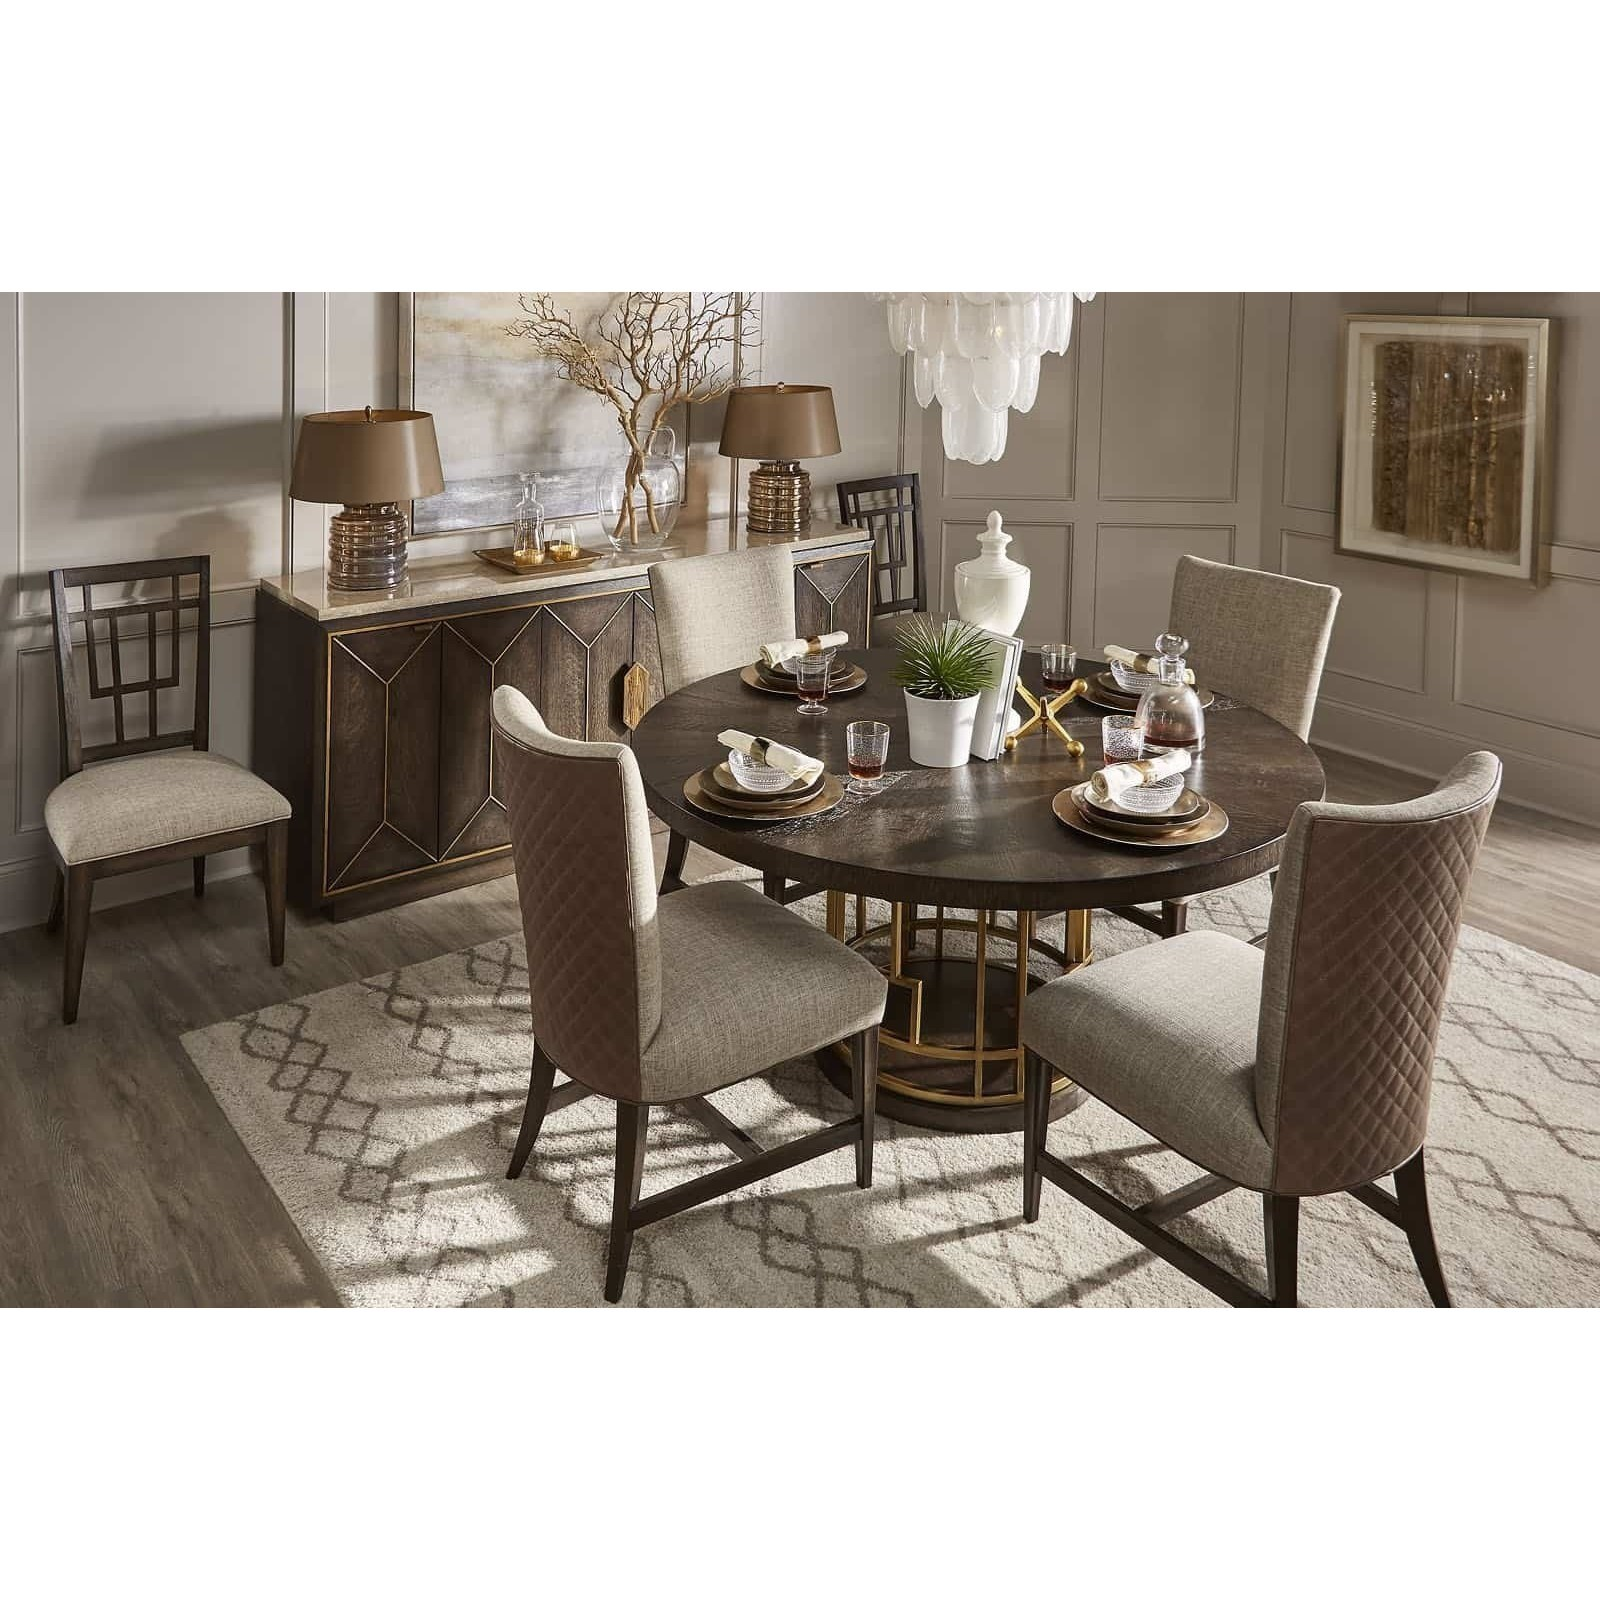 WoodWright Casual Dining Room Group by Klien Furniture at Sprintz Furniture